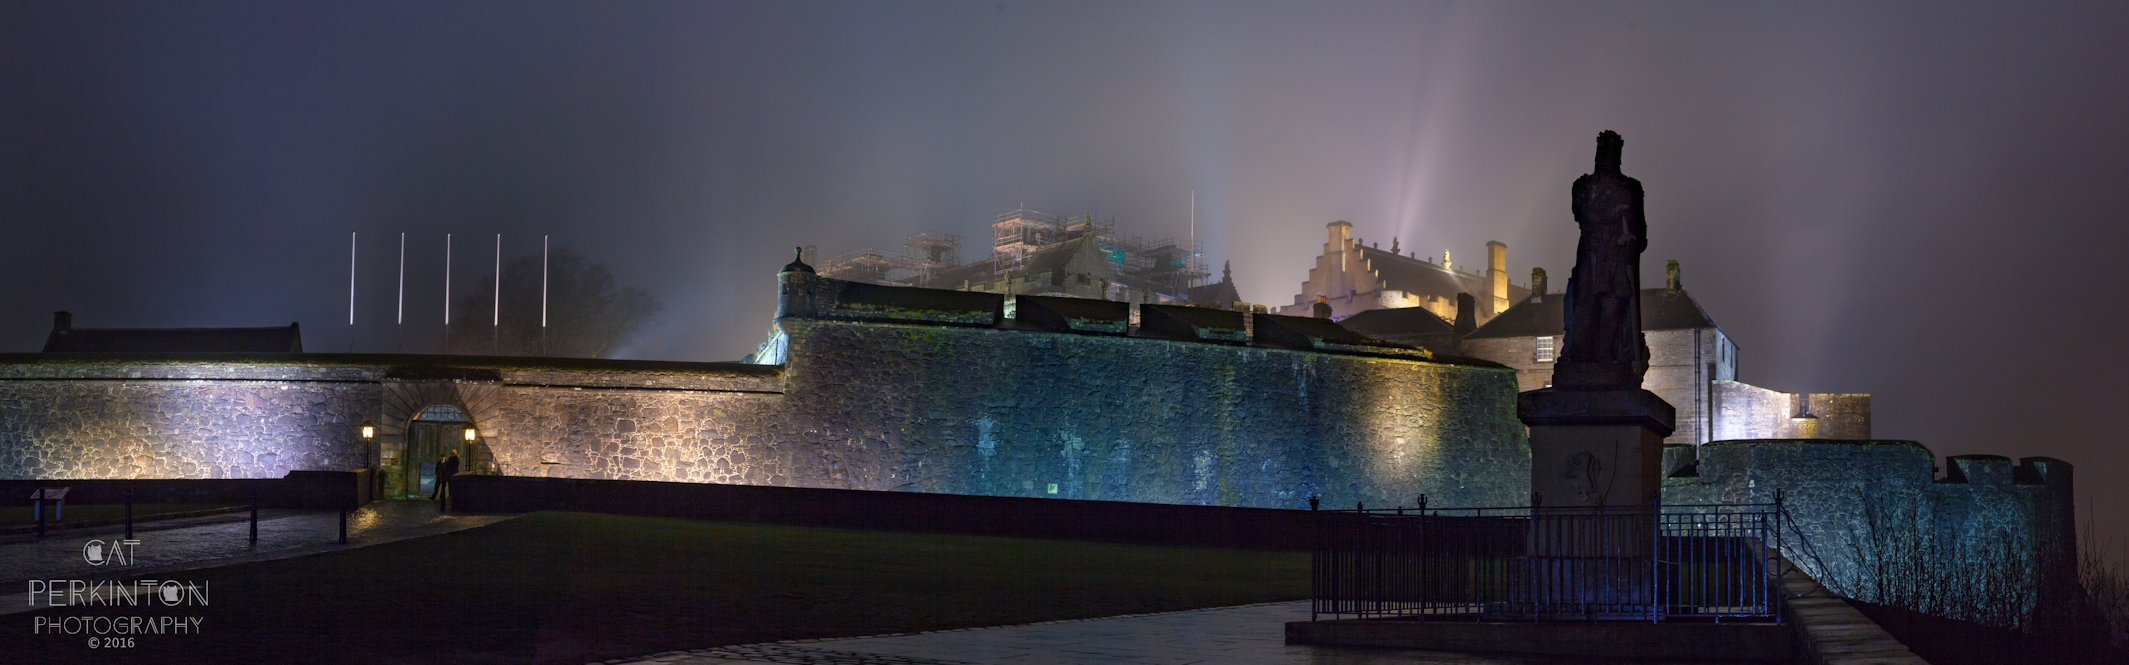 Stirling Castle Night Panormama 2